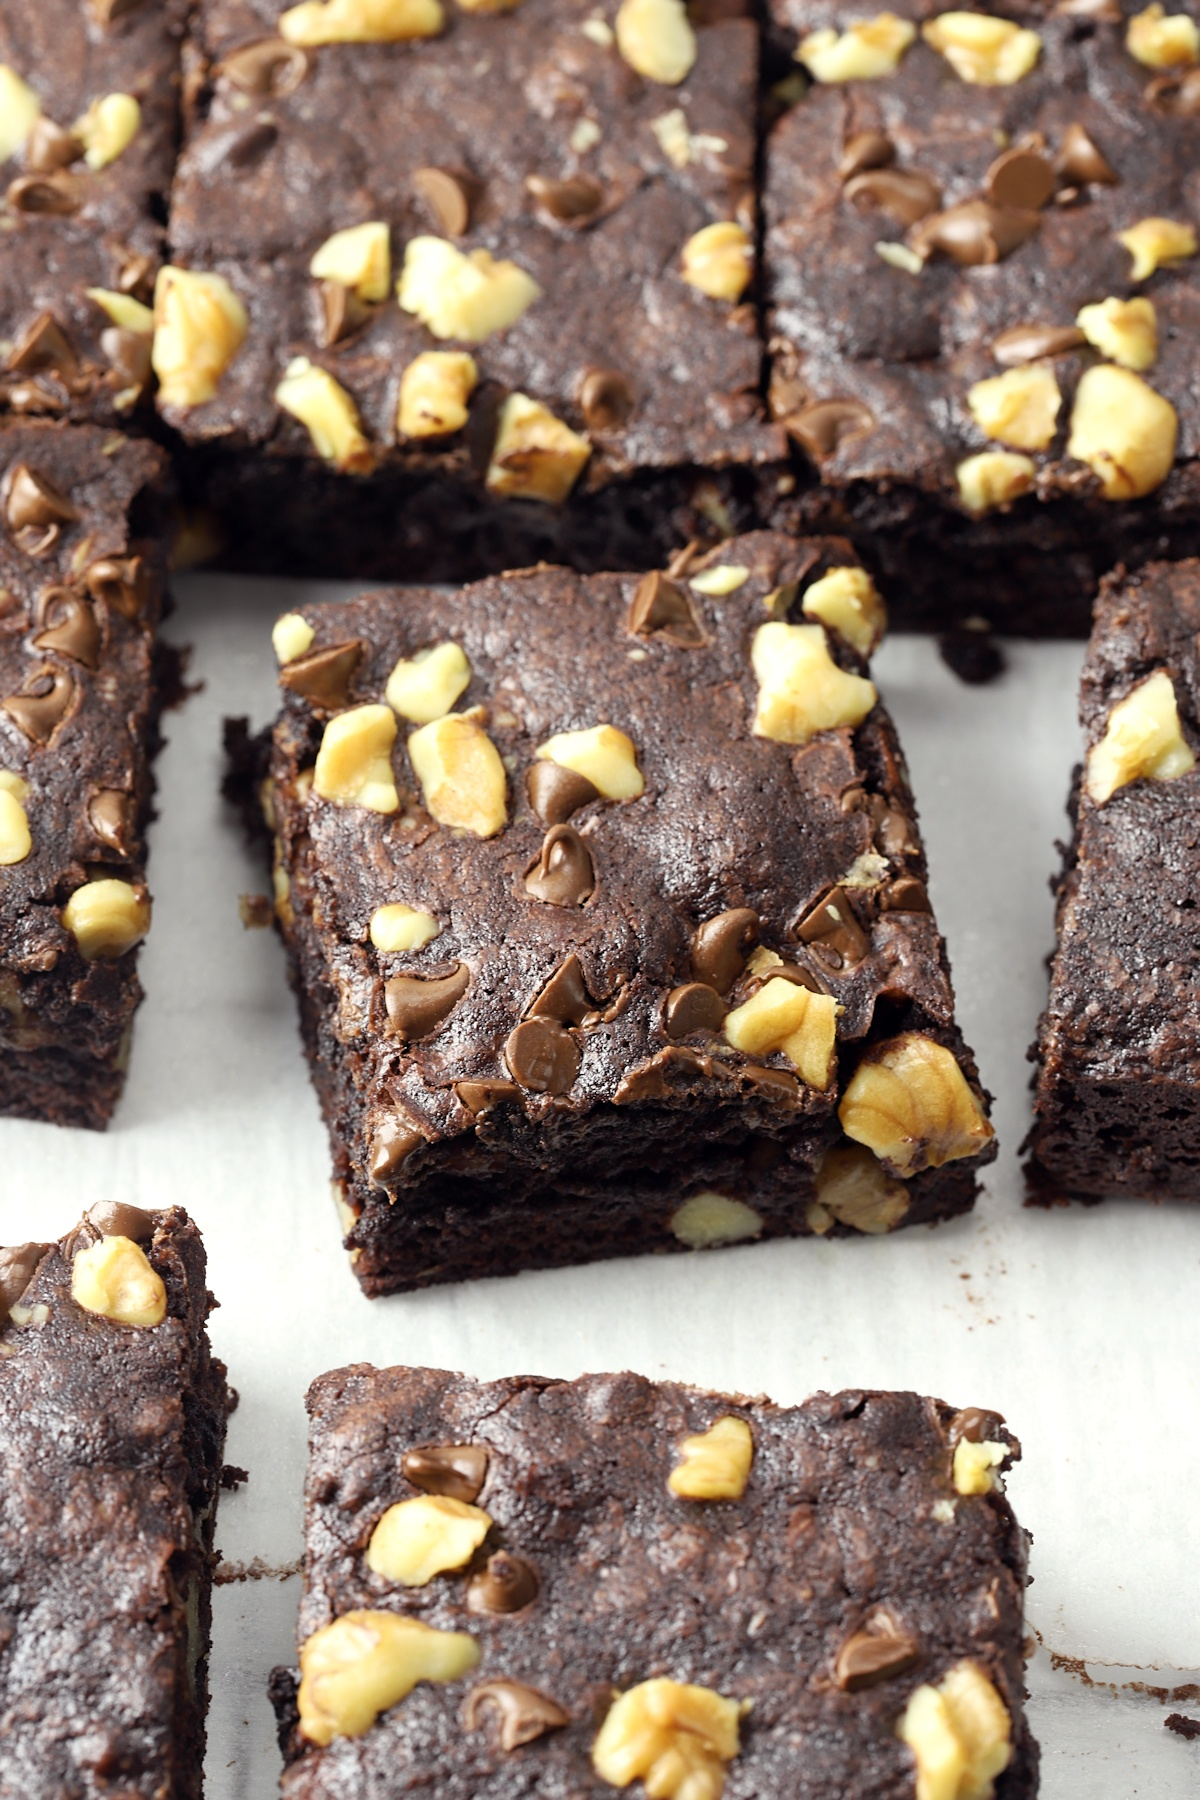 Brownies sliced into squares.